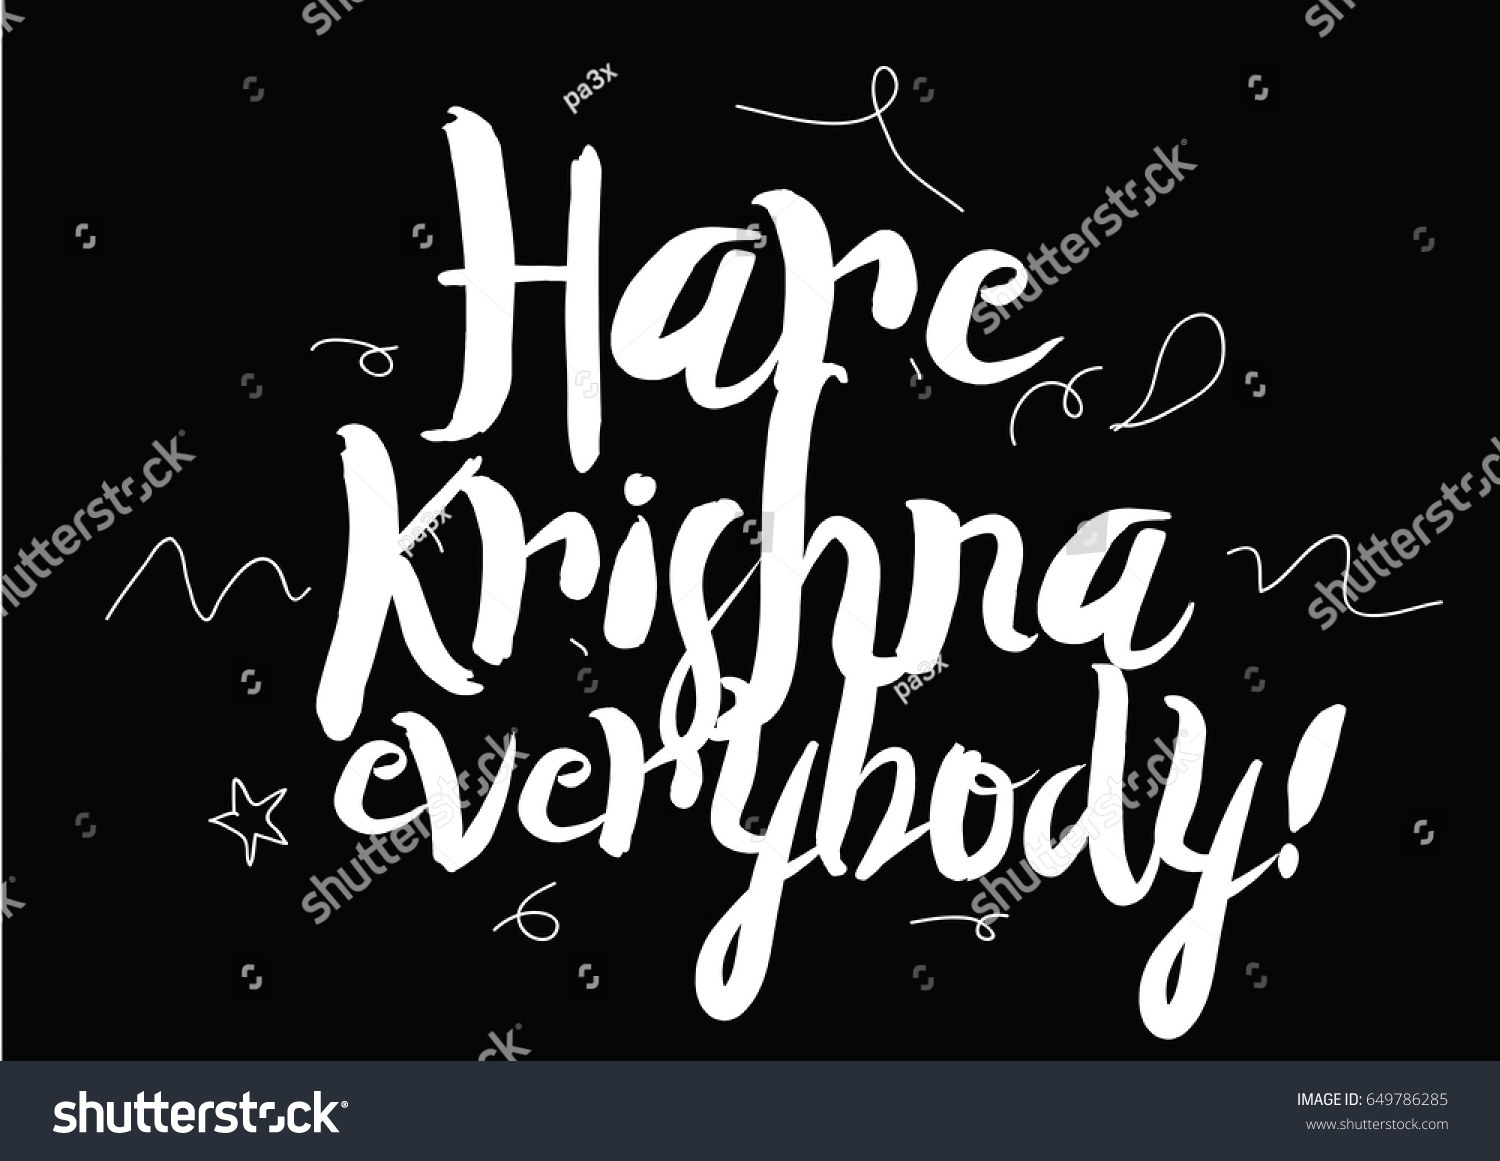 Hare krishna everybody greeting card modern stock vector 649786285 hare krishna everybody greeting card with modern calligraphy and hand drawn elements isolated typographical kristyandbryce Gallery